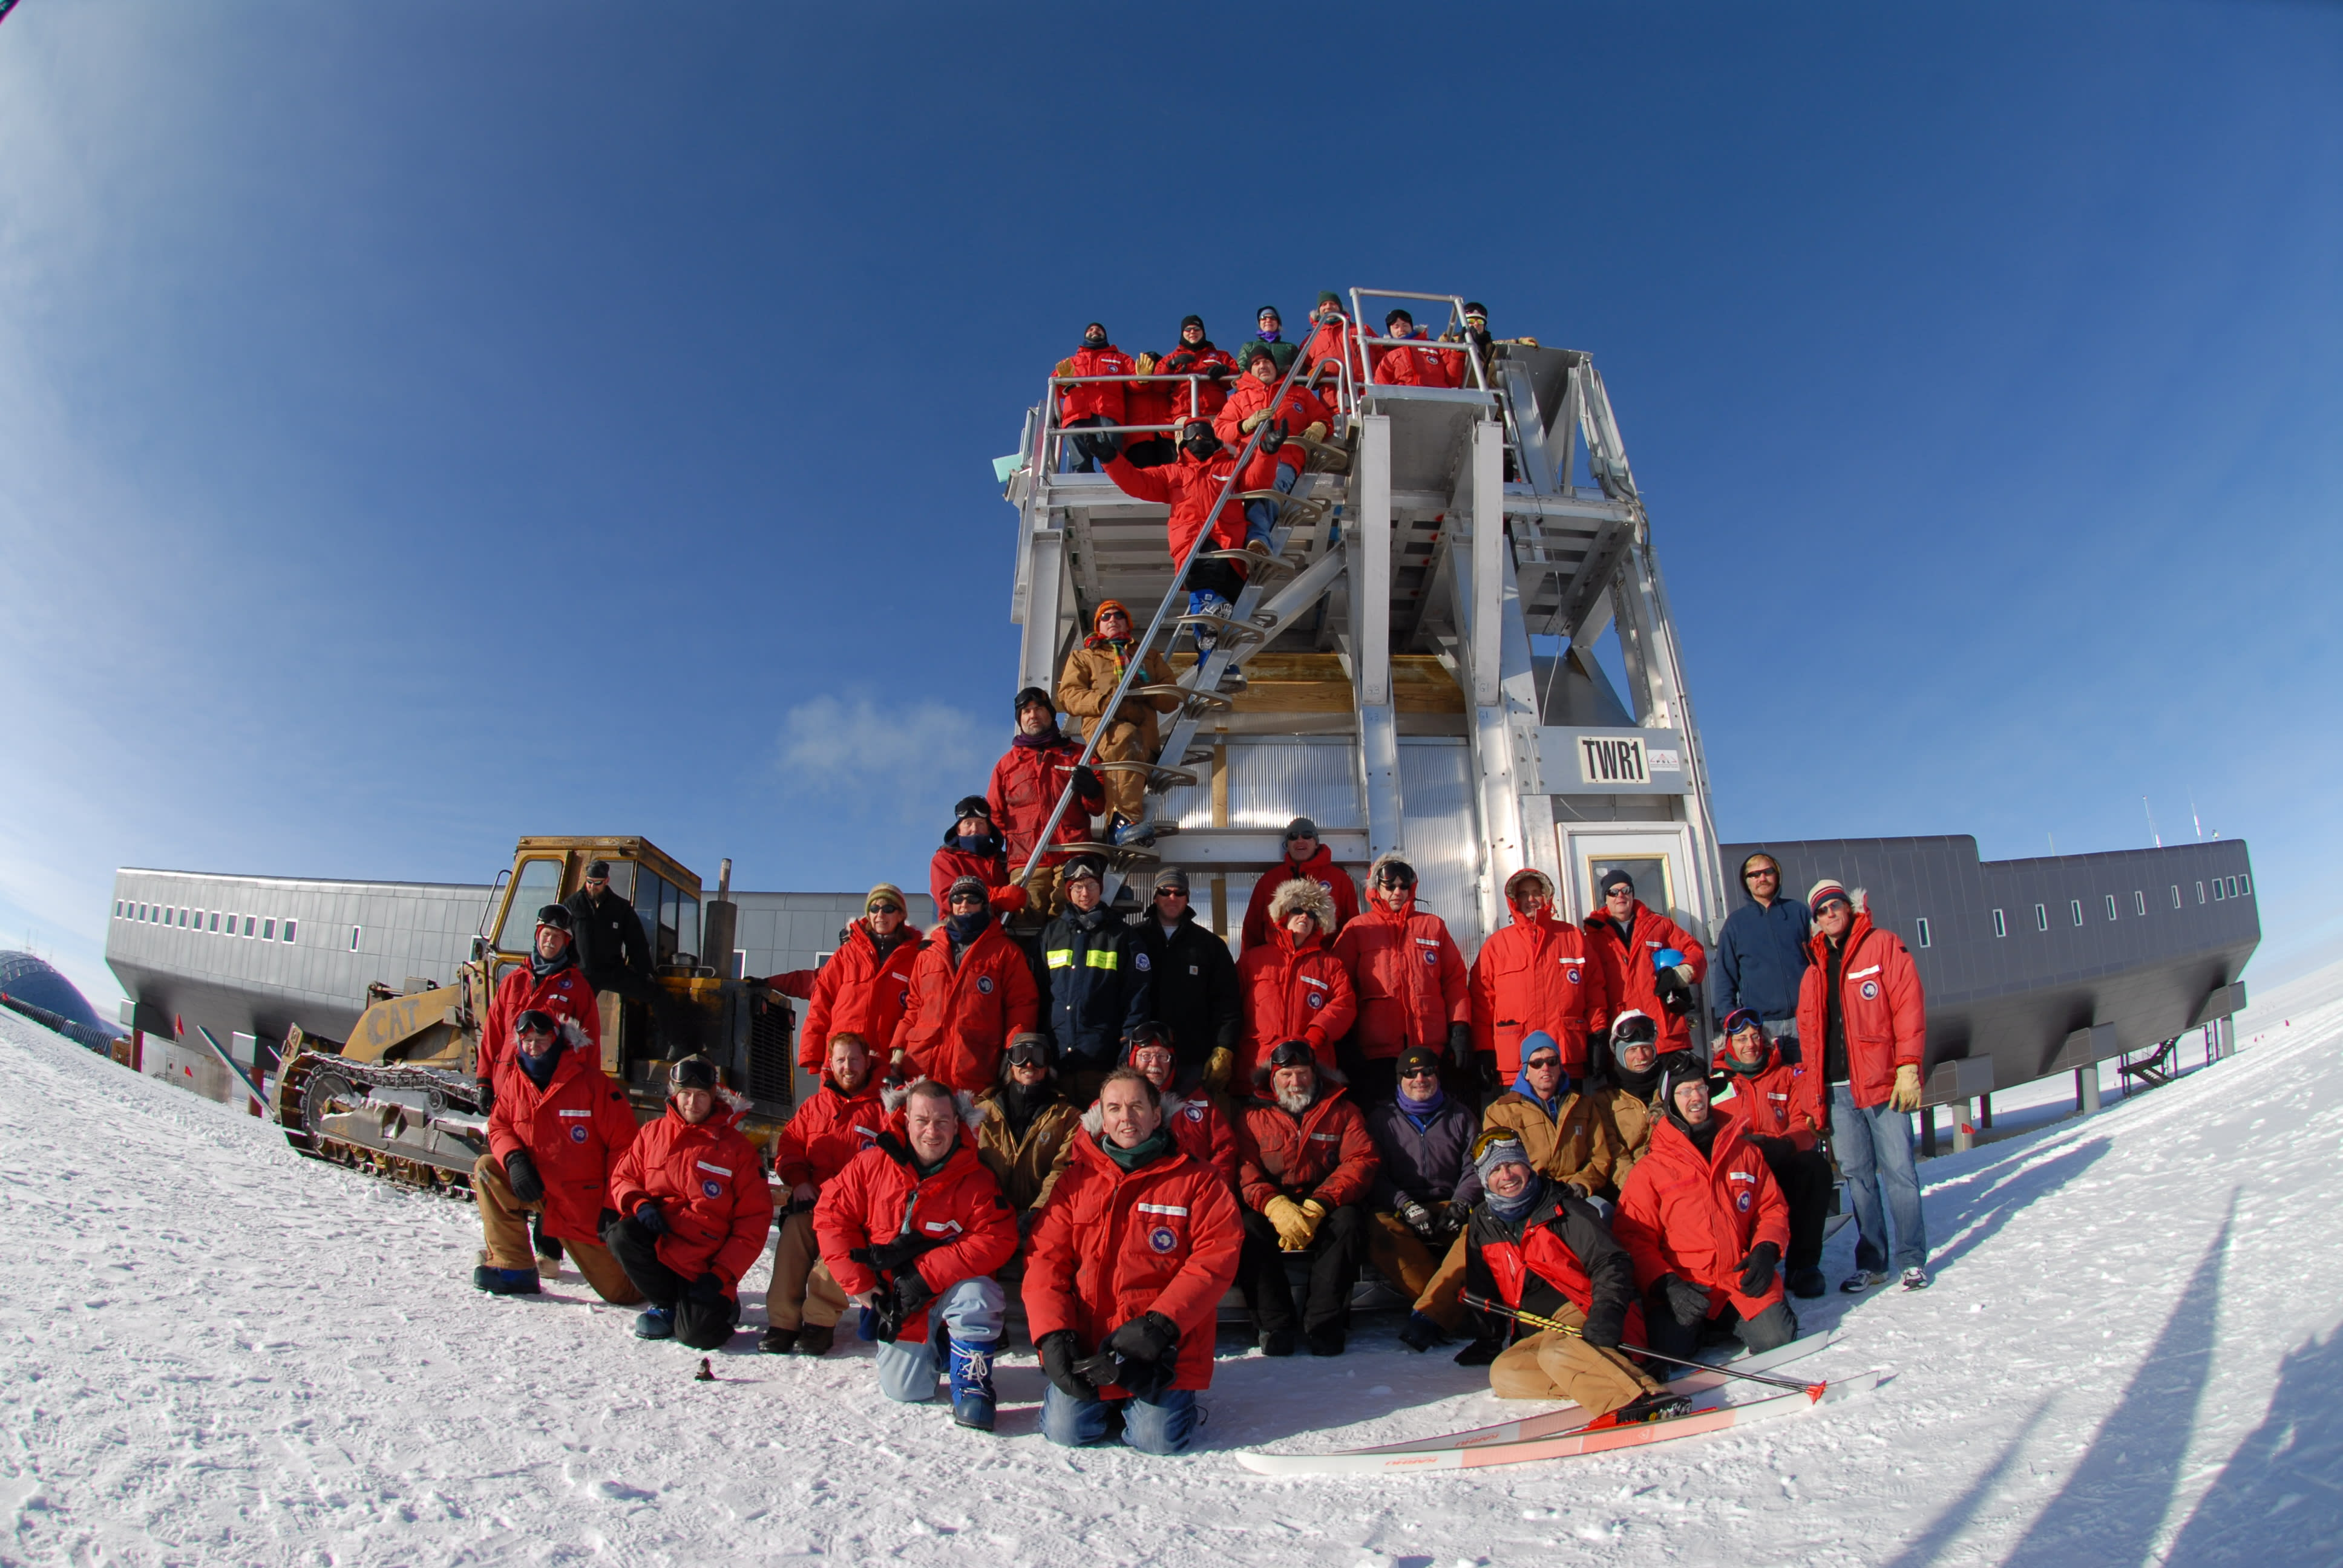 IceCube South Pole team for the 2007-2008 season